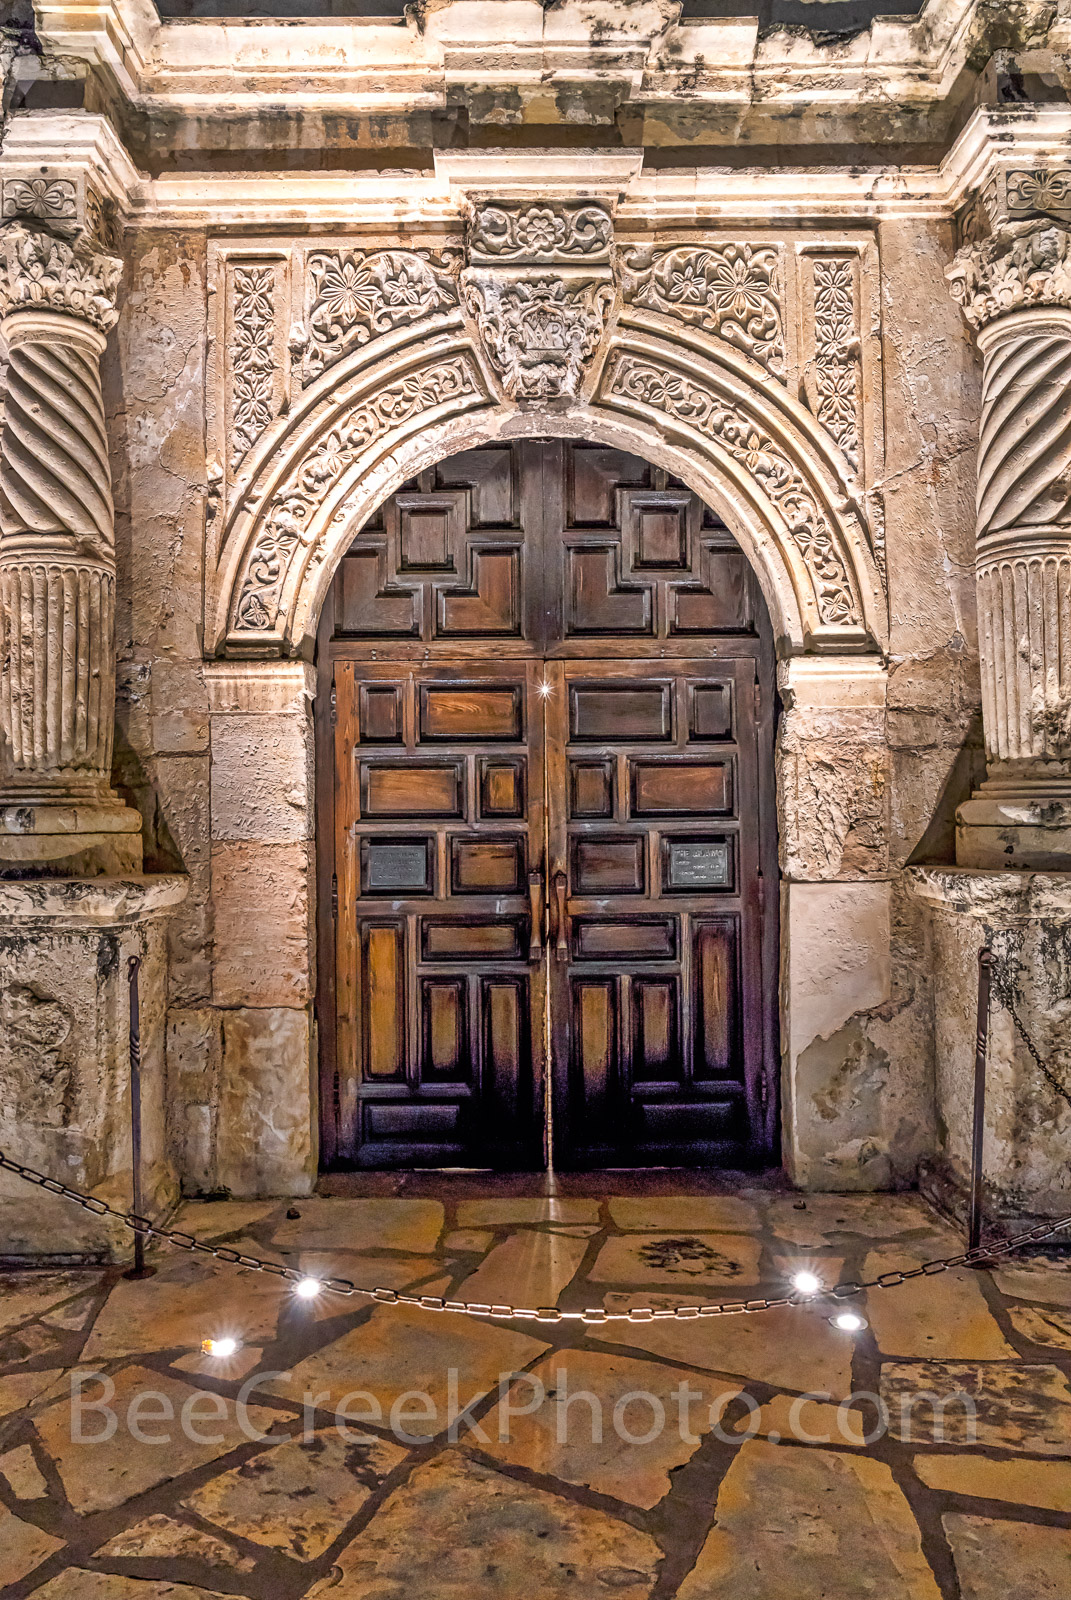 The Alamo Door -  The Alamo door in San Antonio Texas in the early morning before the sun came up. You can see the...